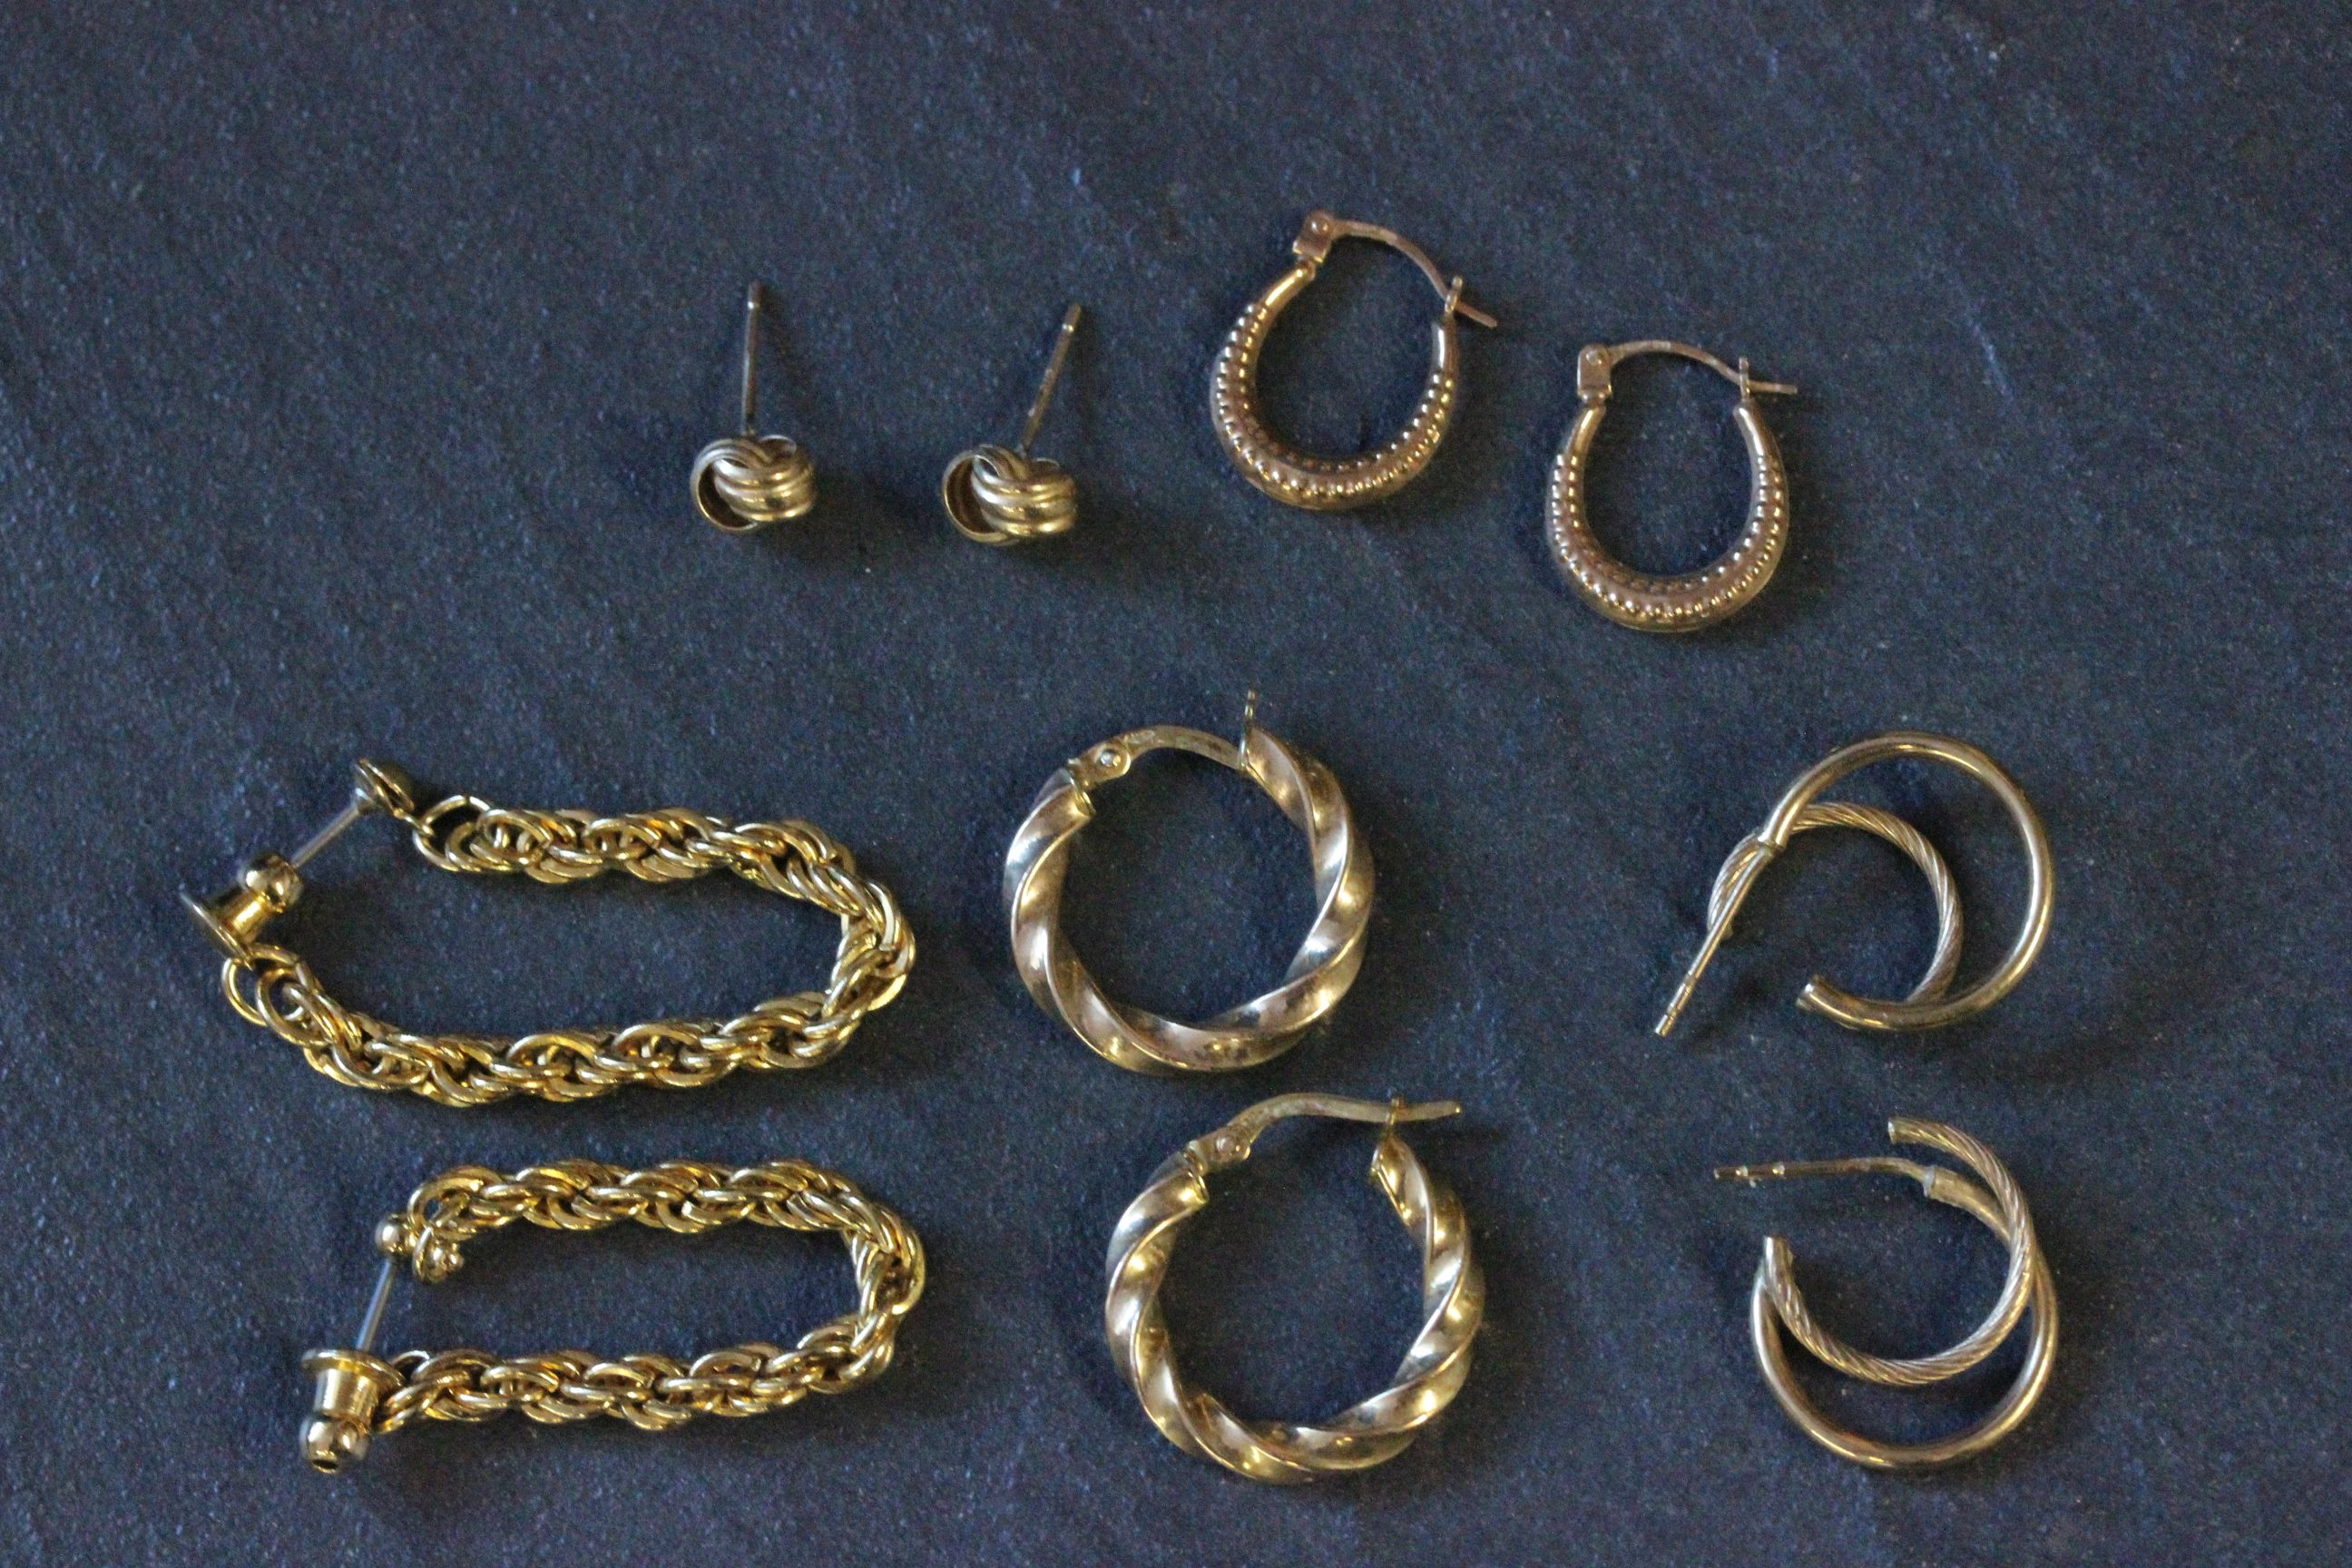 Lot 32 - Two pair of 9 carat gold earrings, along with three other pair of earrings